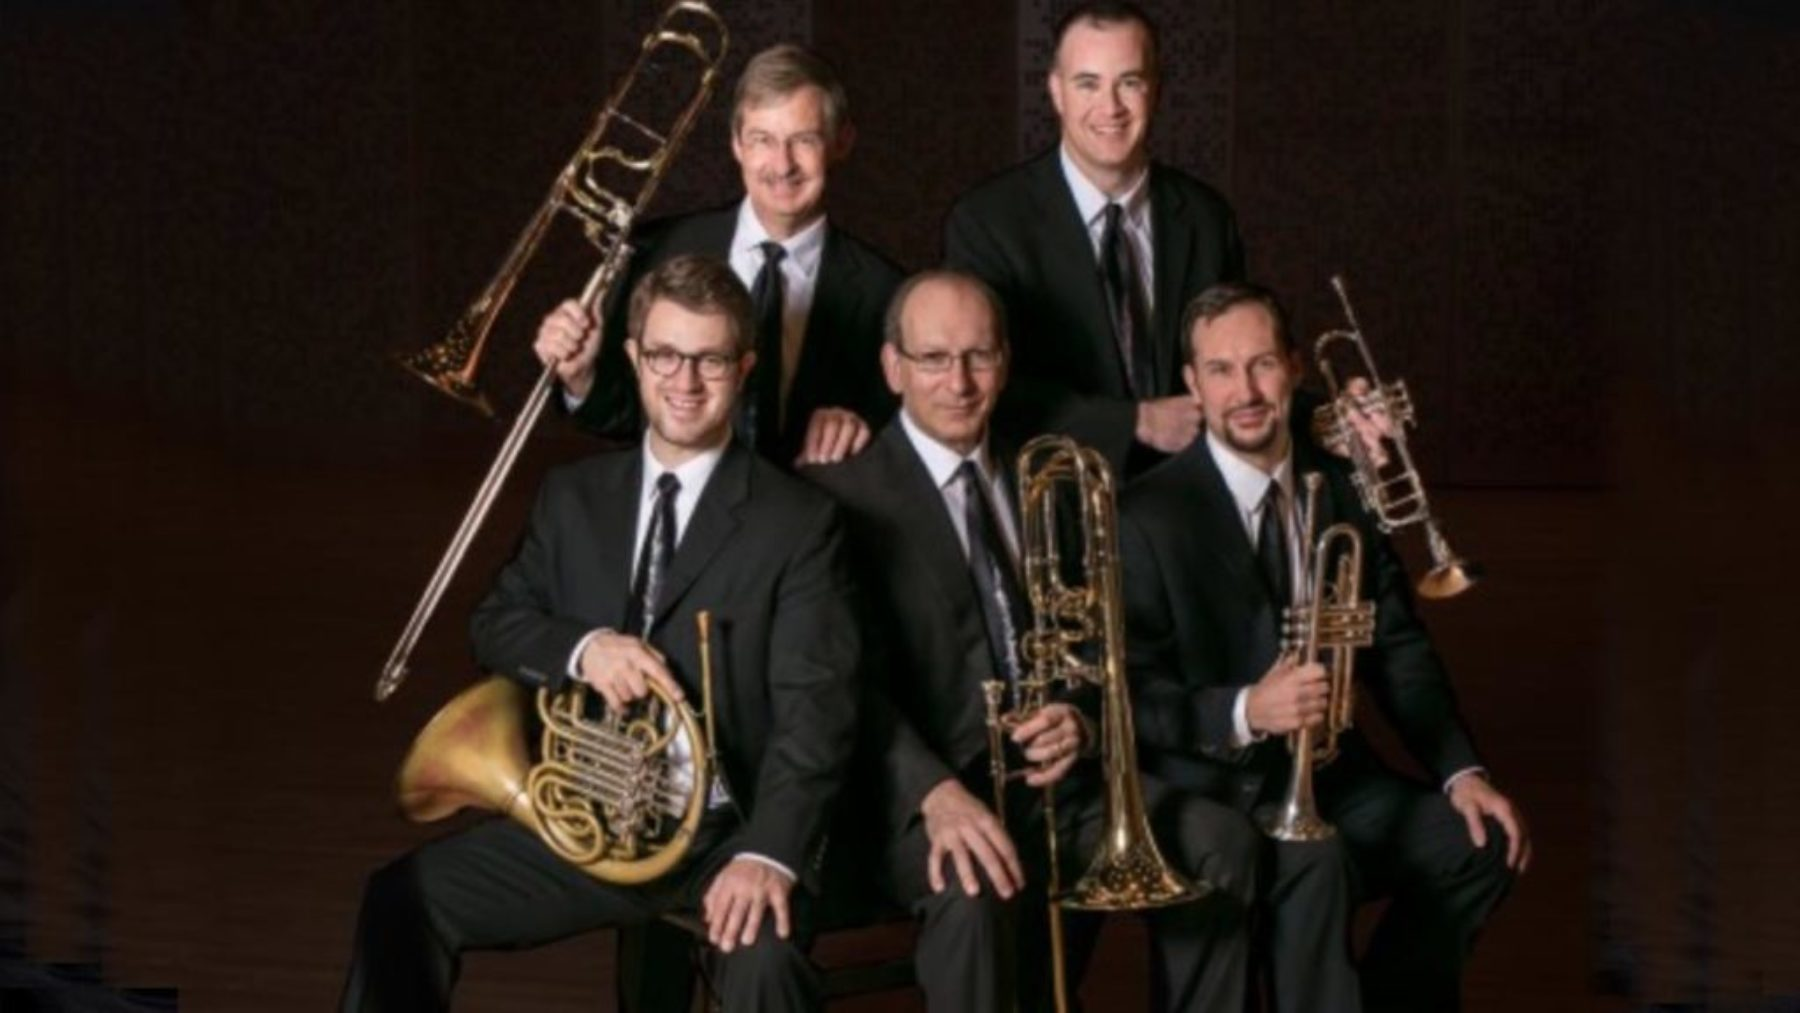 American Brass Quintet - Saturday, January 25, 2020, 4 p.m.